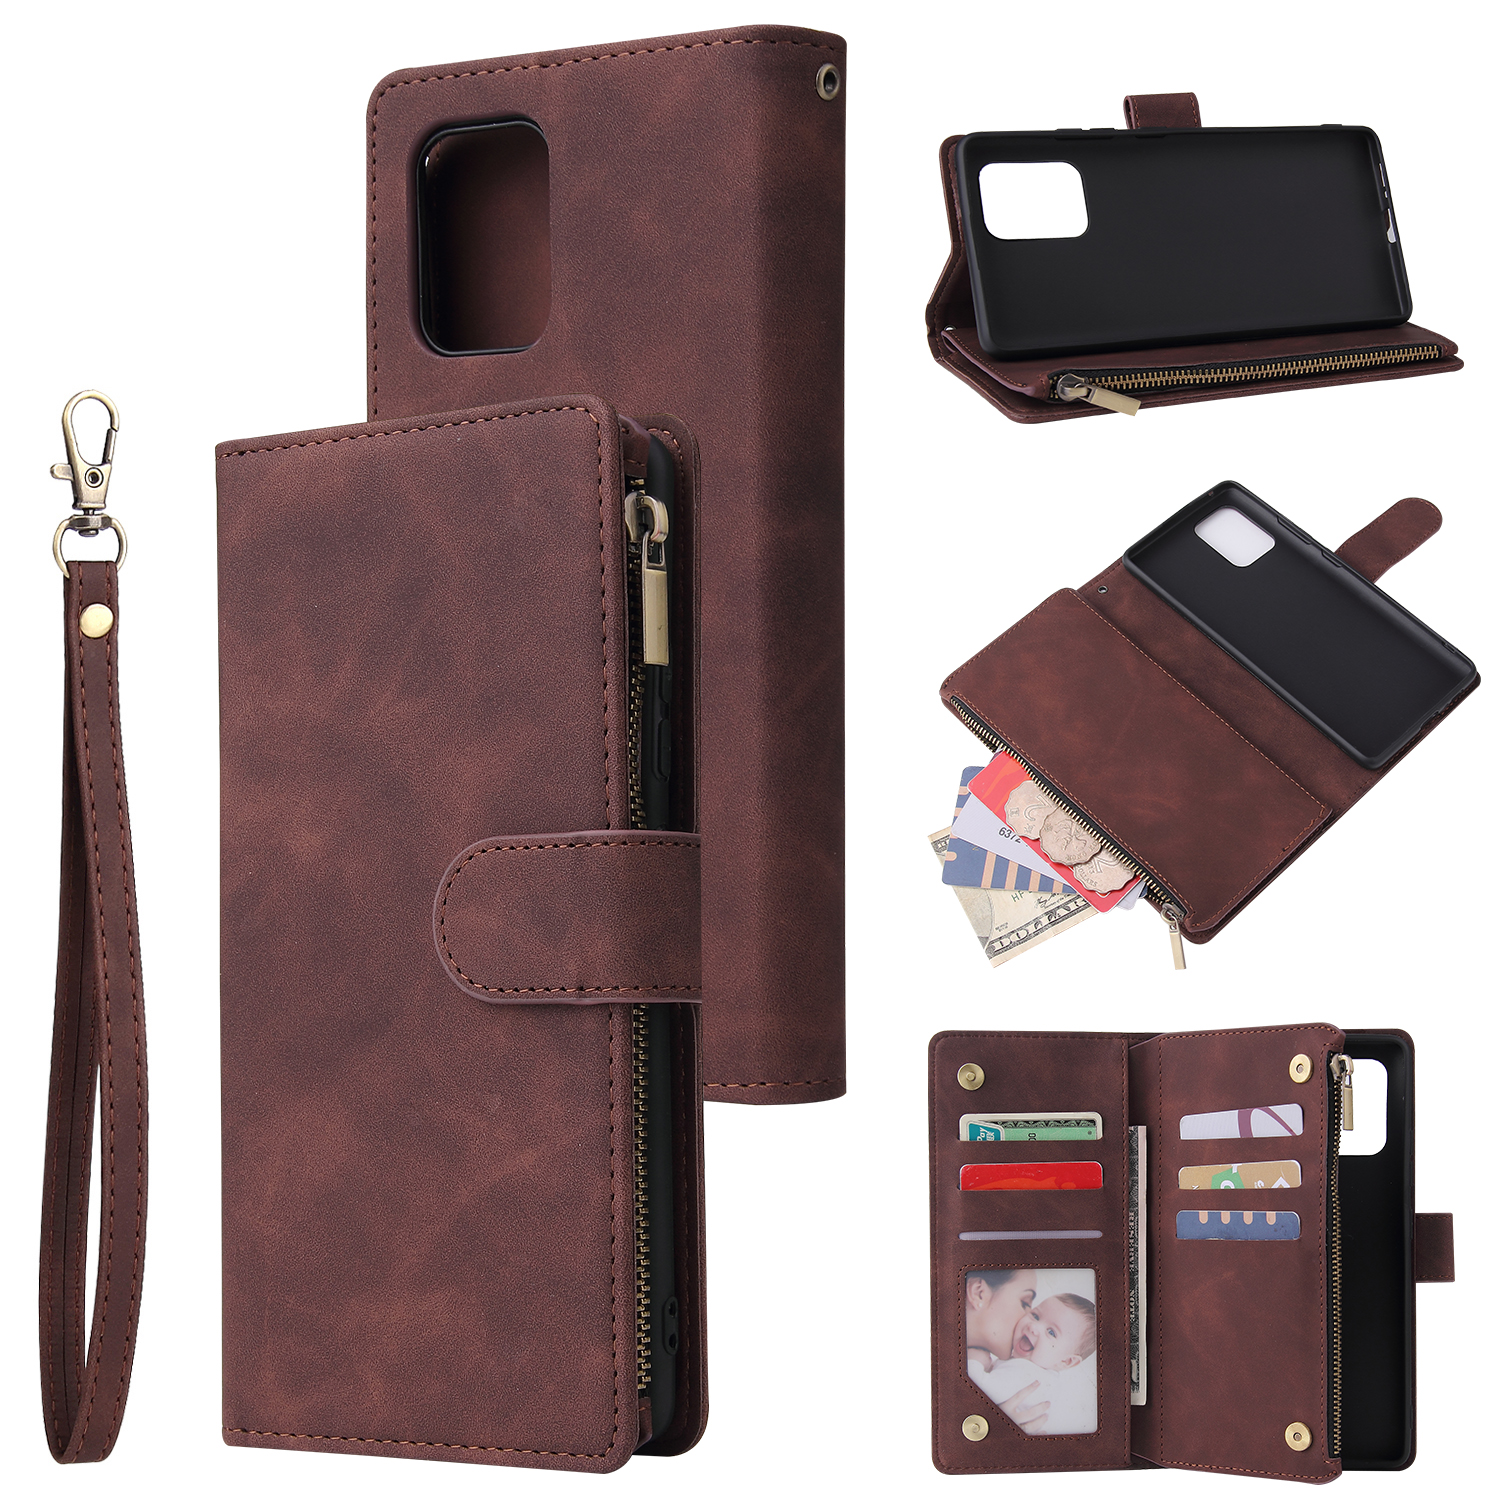 For Samsung S10 Lite 2020 Mobile Phone Case Wallet Design Zipper Closure Overall Protection Cellphone Cover  3 brown